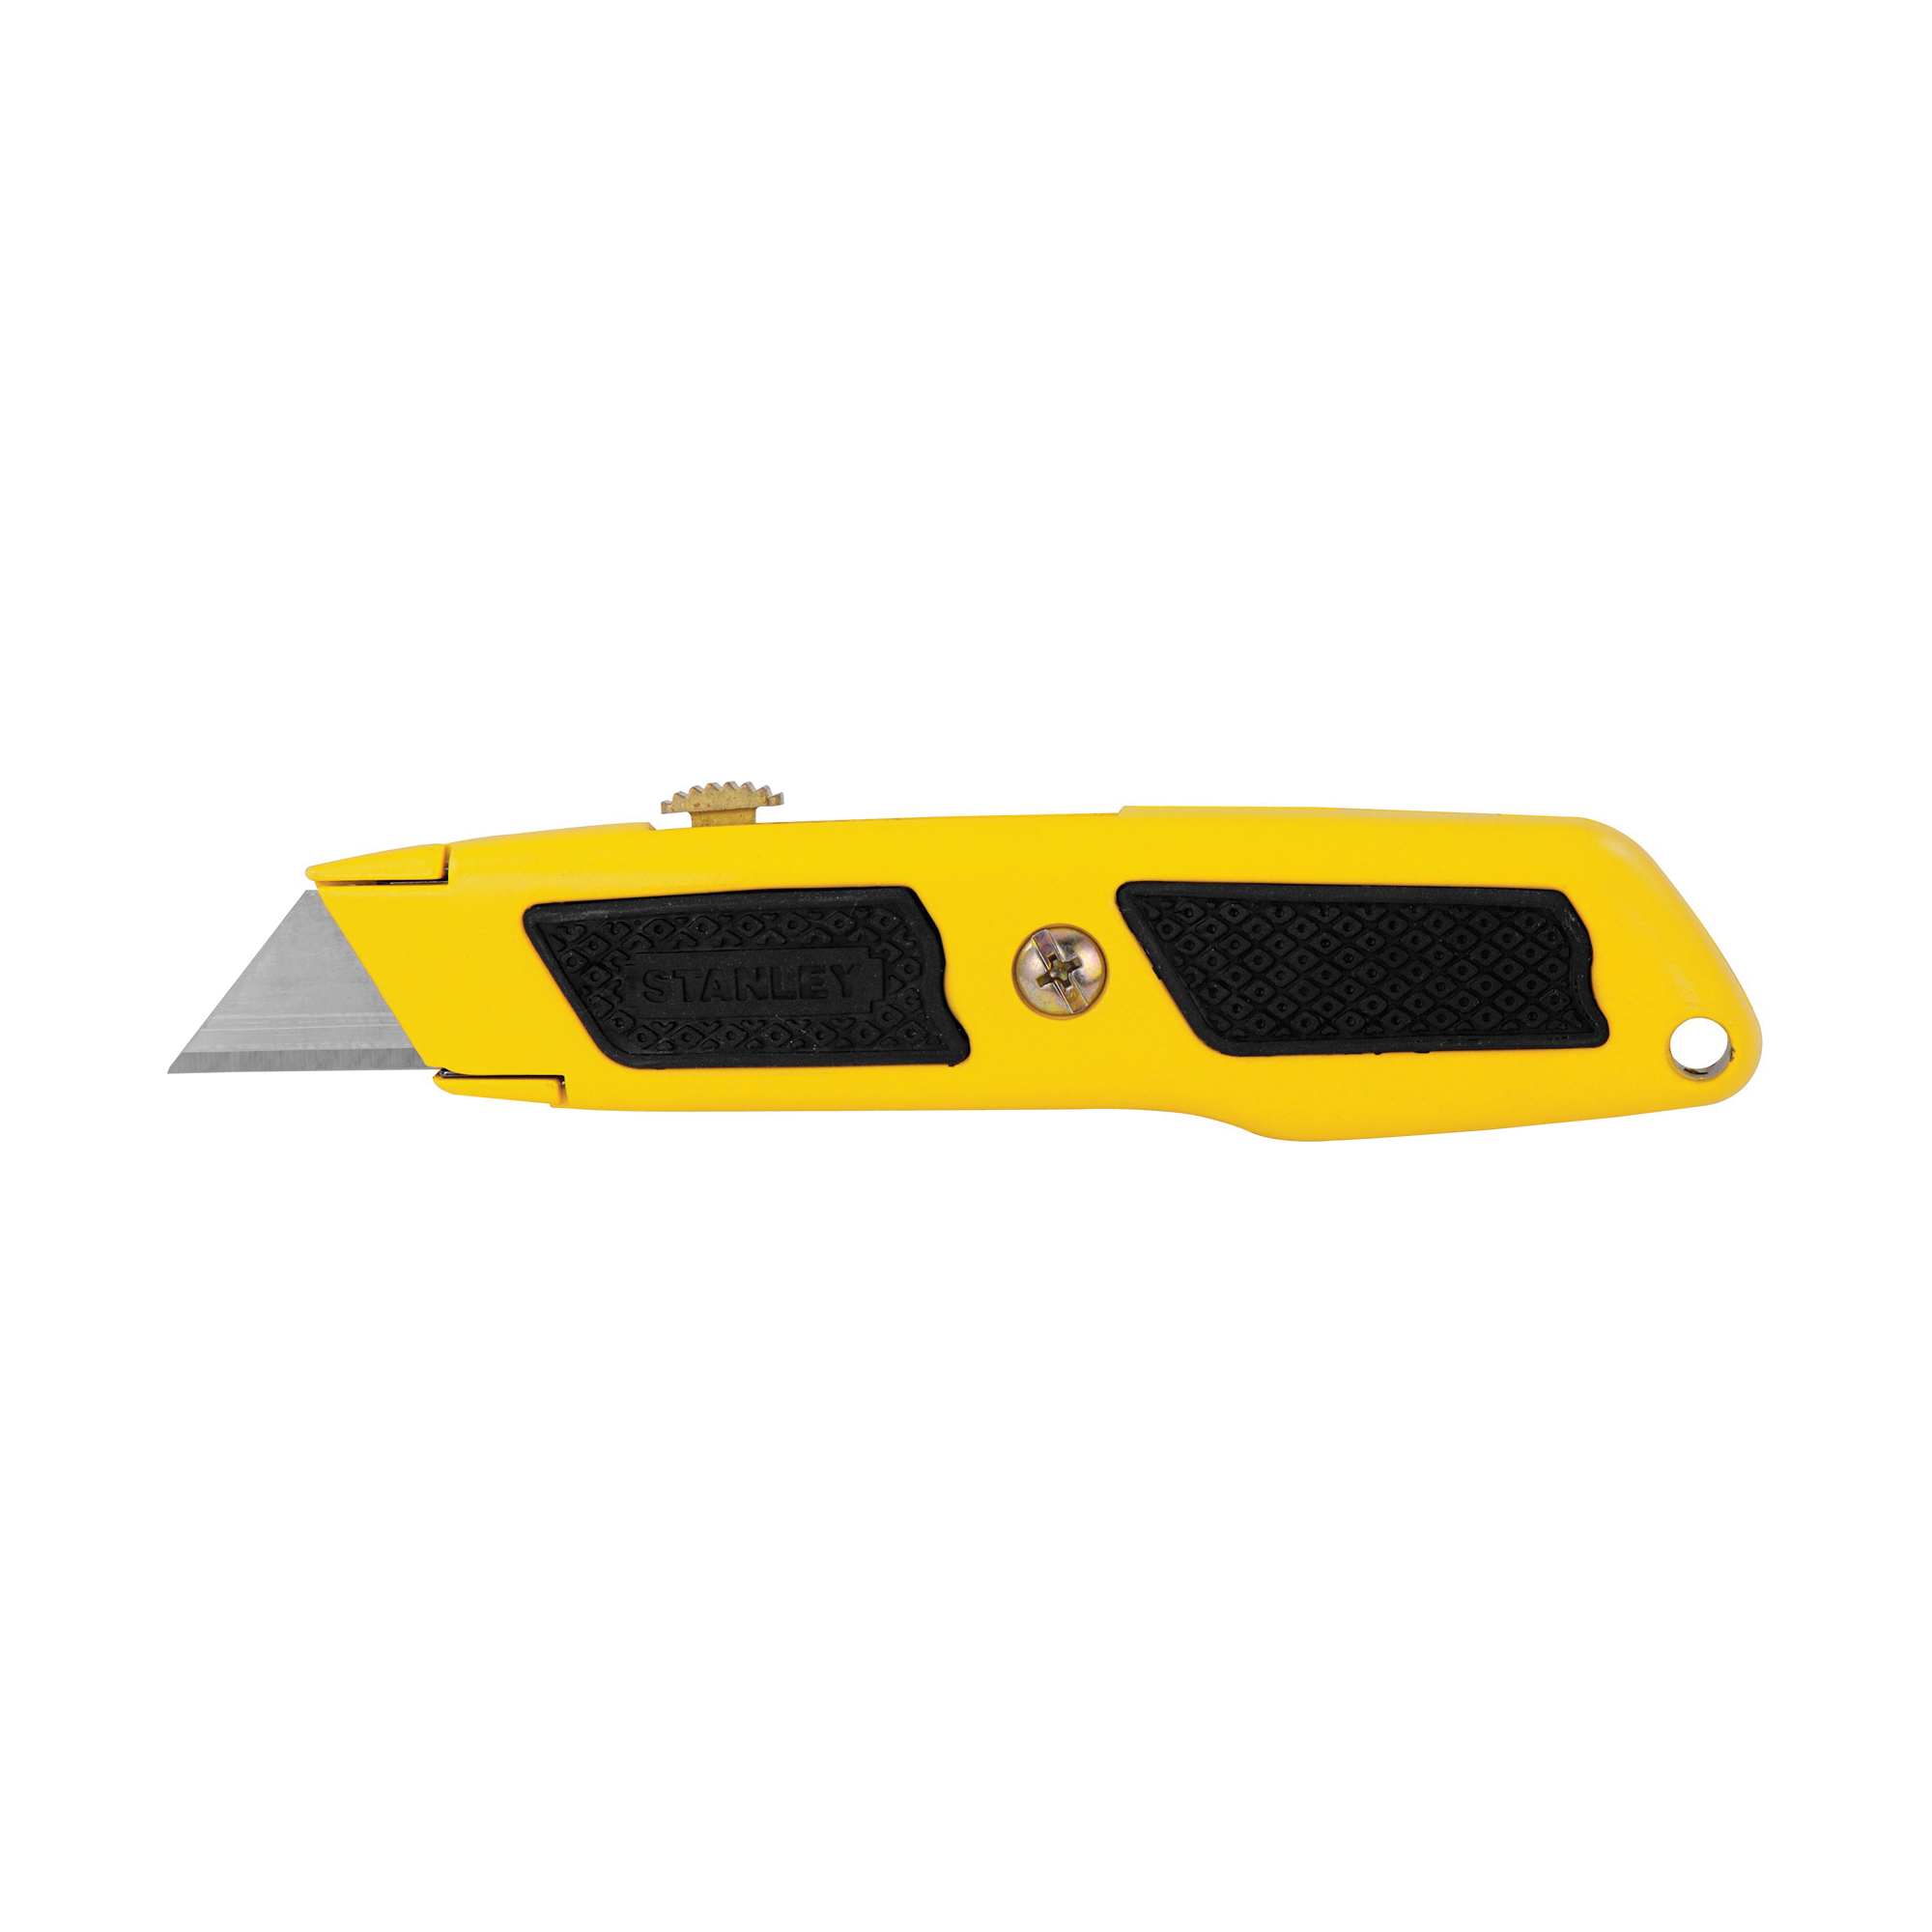 Stanley® Dynagrip® 10-779 Utility Knife, Retractable Blade, 3 Blades Included, Carbon Steel Blade